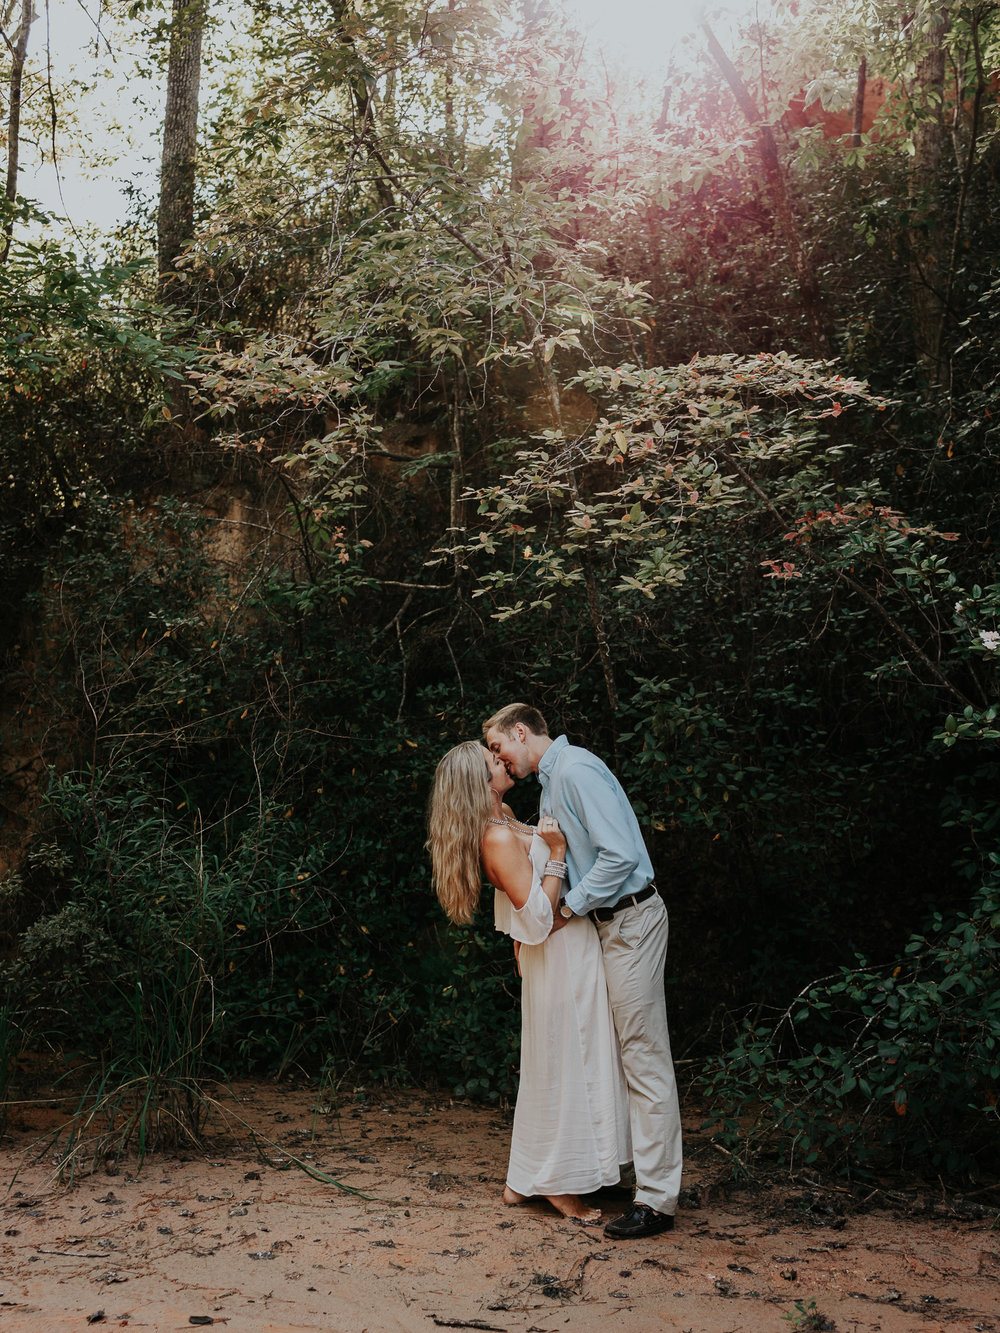 brittany martorella columbus georgia fort benning engagement elopement wedding photographer-64.JPG